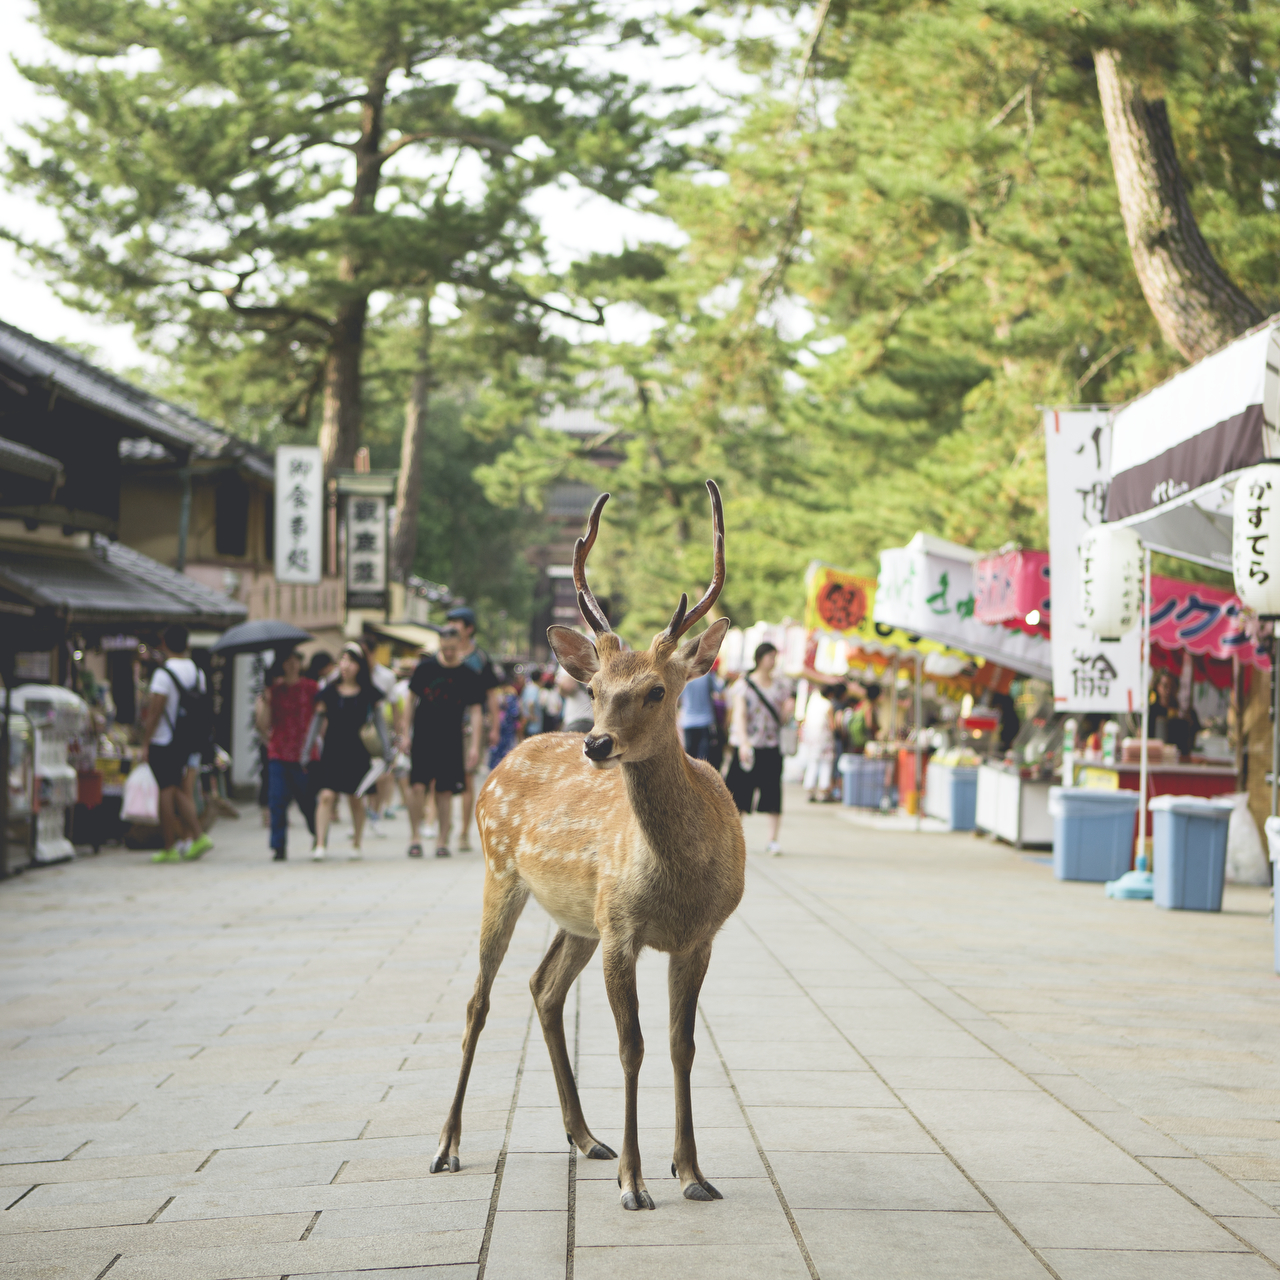 Photo of a deer in street in Urban Japan